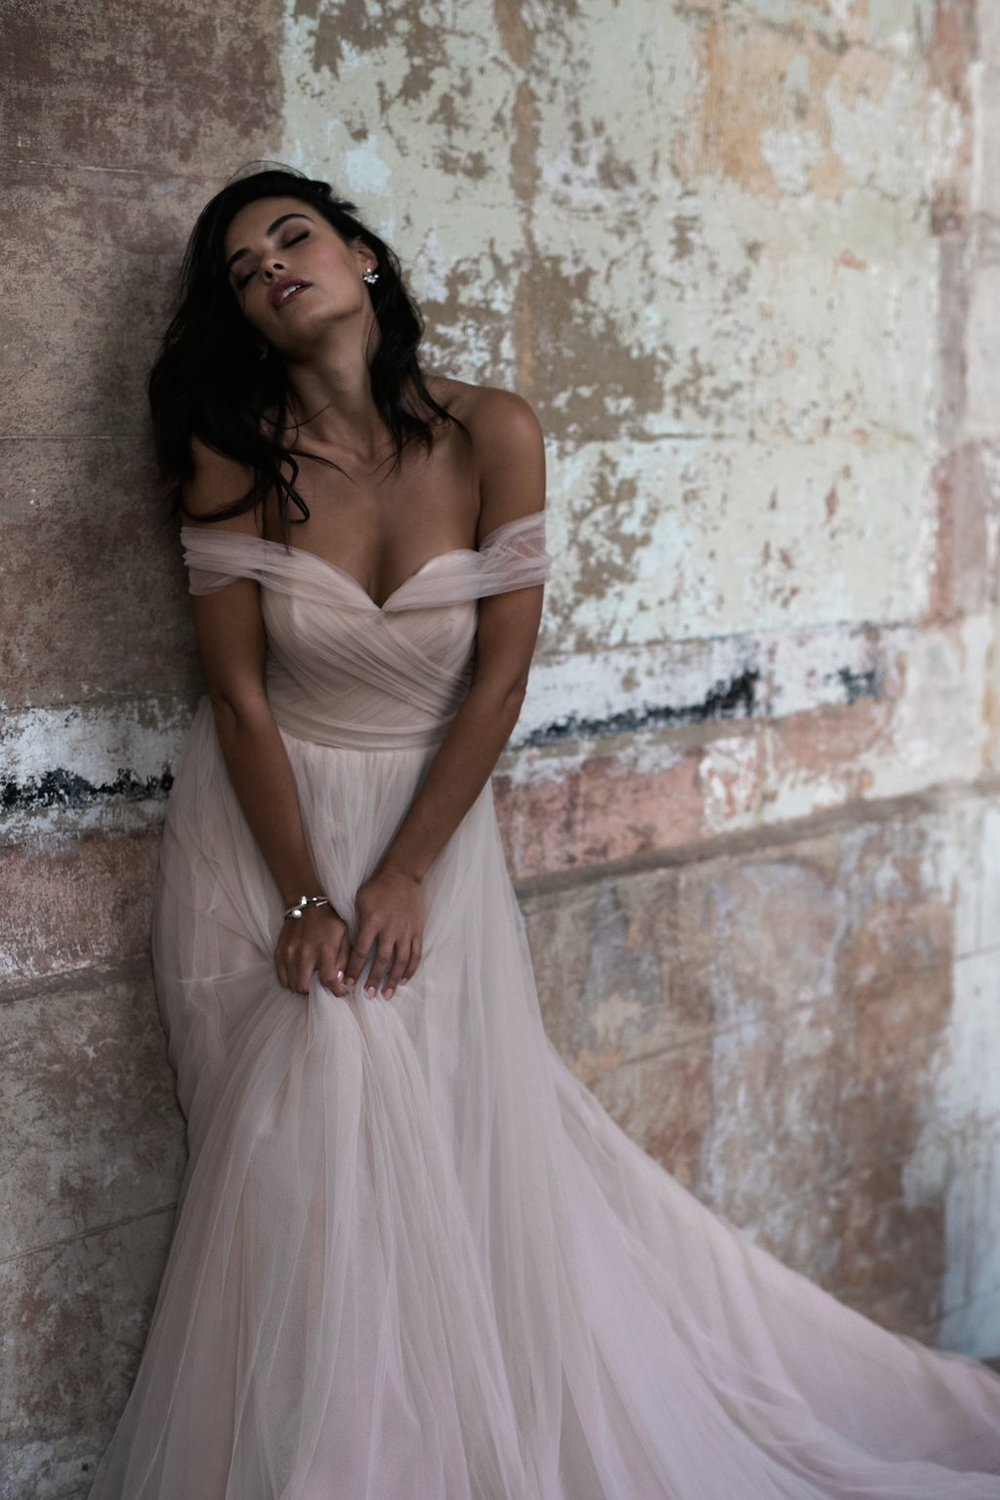 Low Back Wedding Dresses Sydney : Marley moira hughes couture wedding dresses sydney